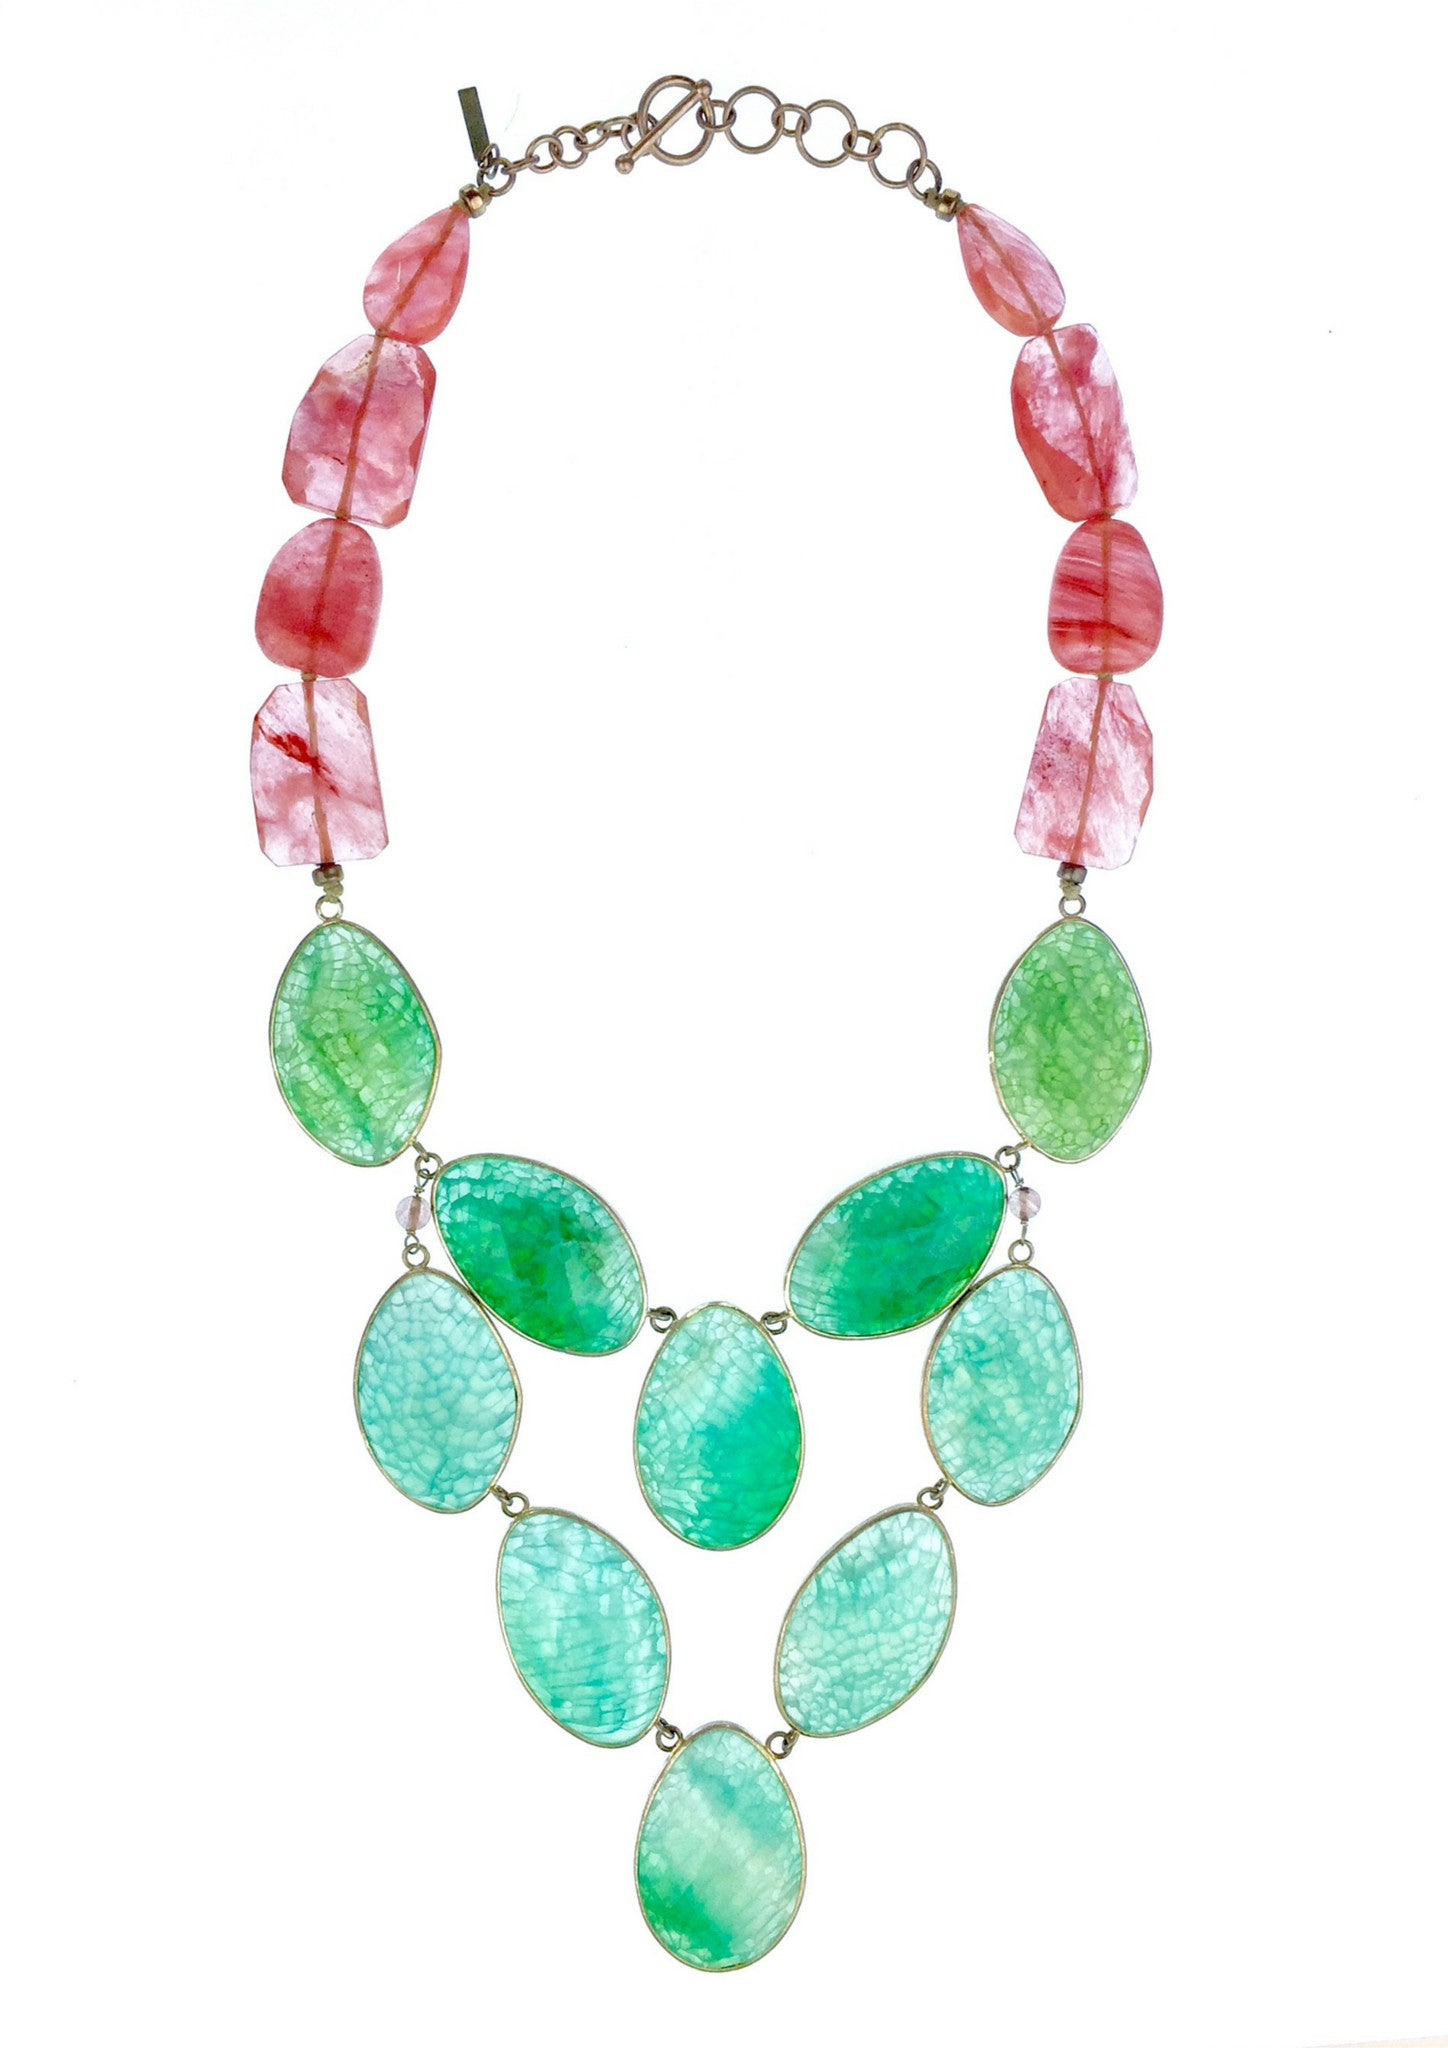 Watermelon Whimsey Necklace JARED JAMIN